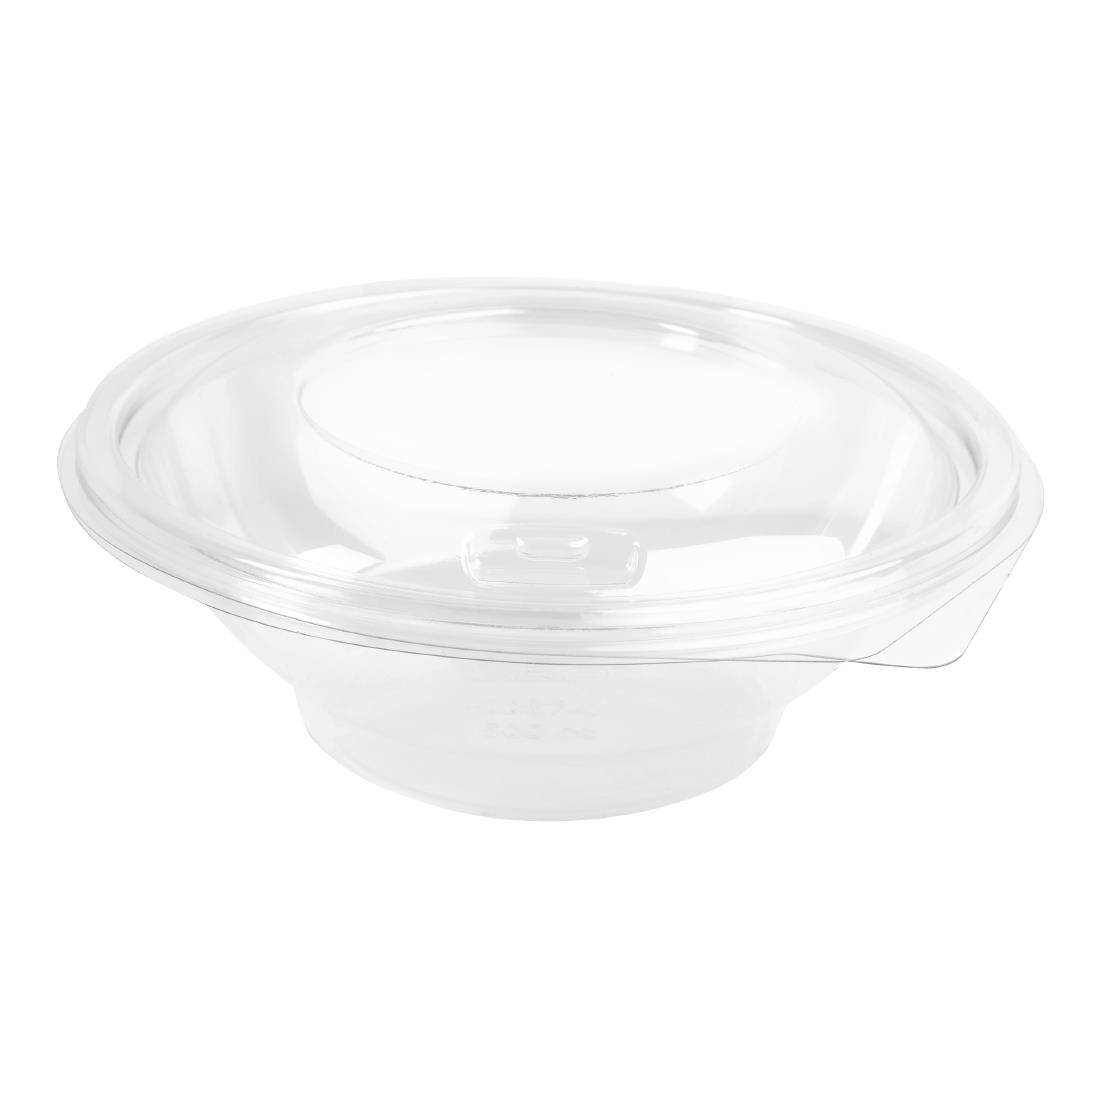 Image of Faerch Contour Recyclable Deli Bowls With Lid 500ml / 17oz (Pack of 200) Pack of 200